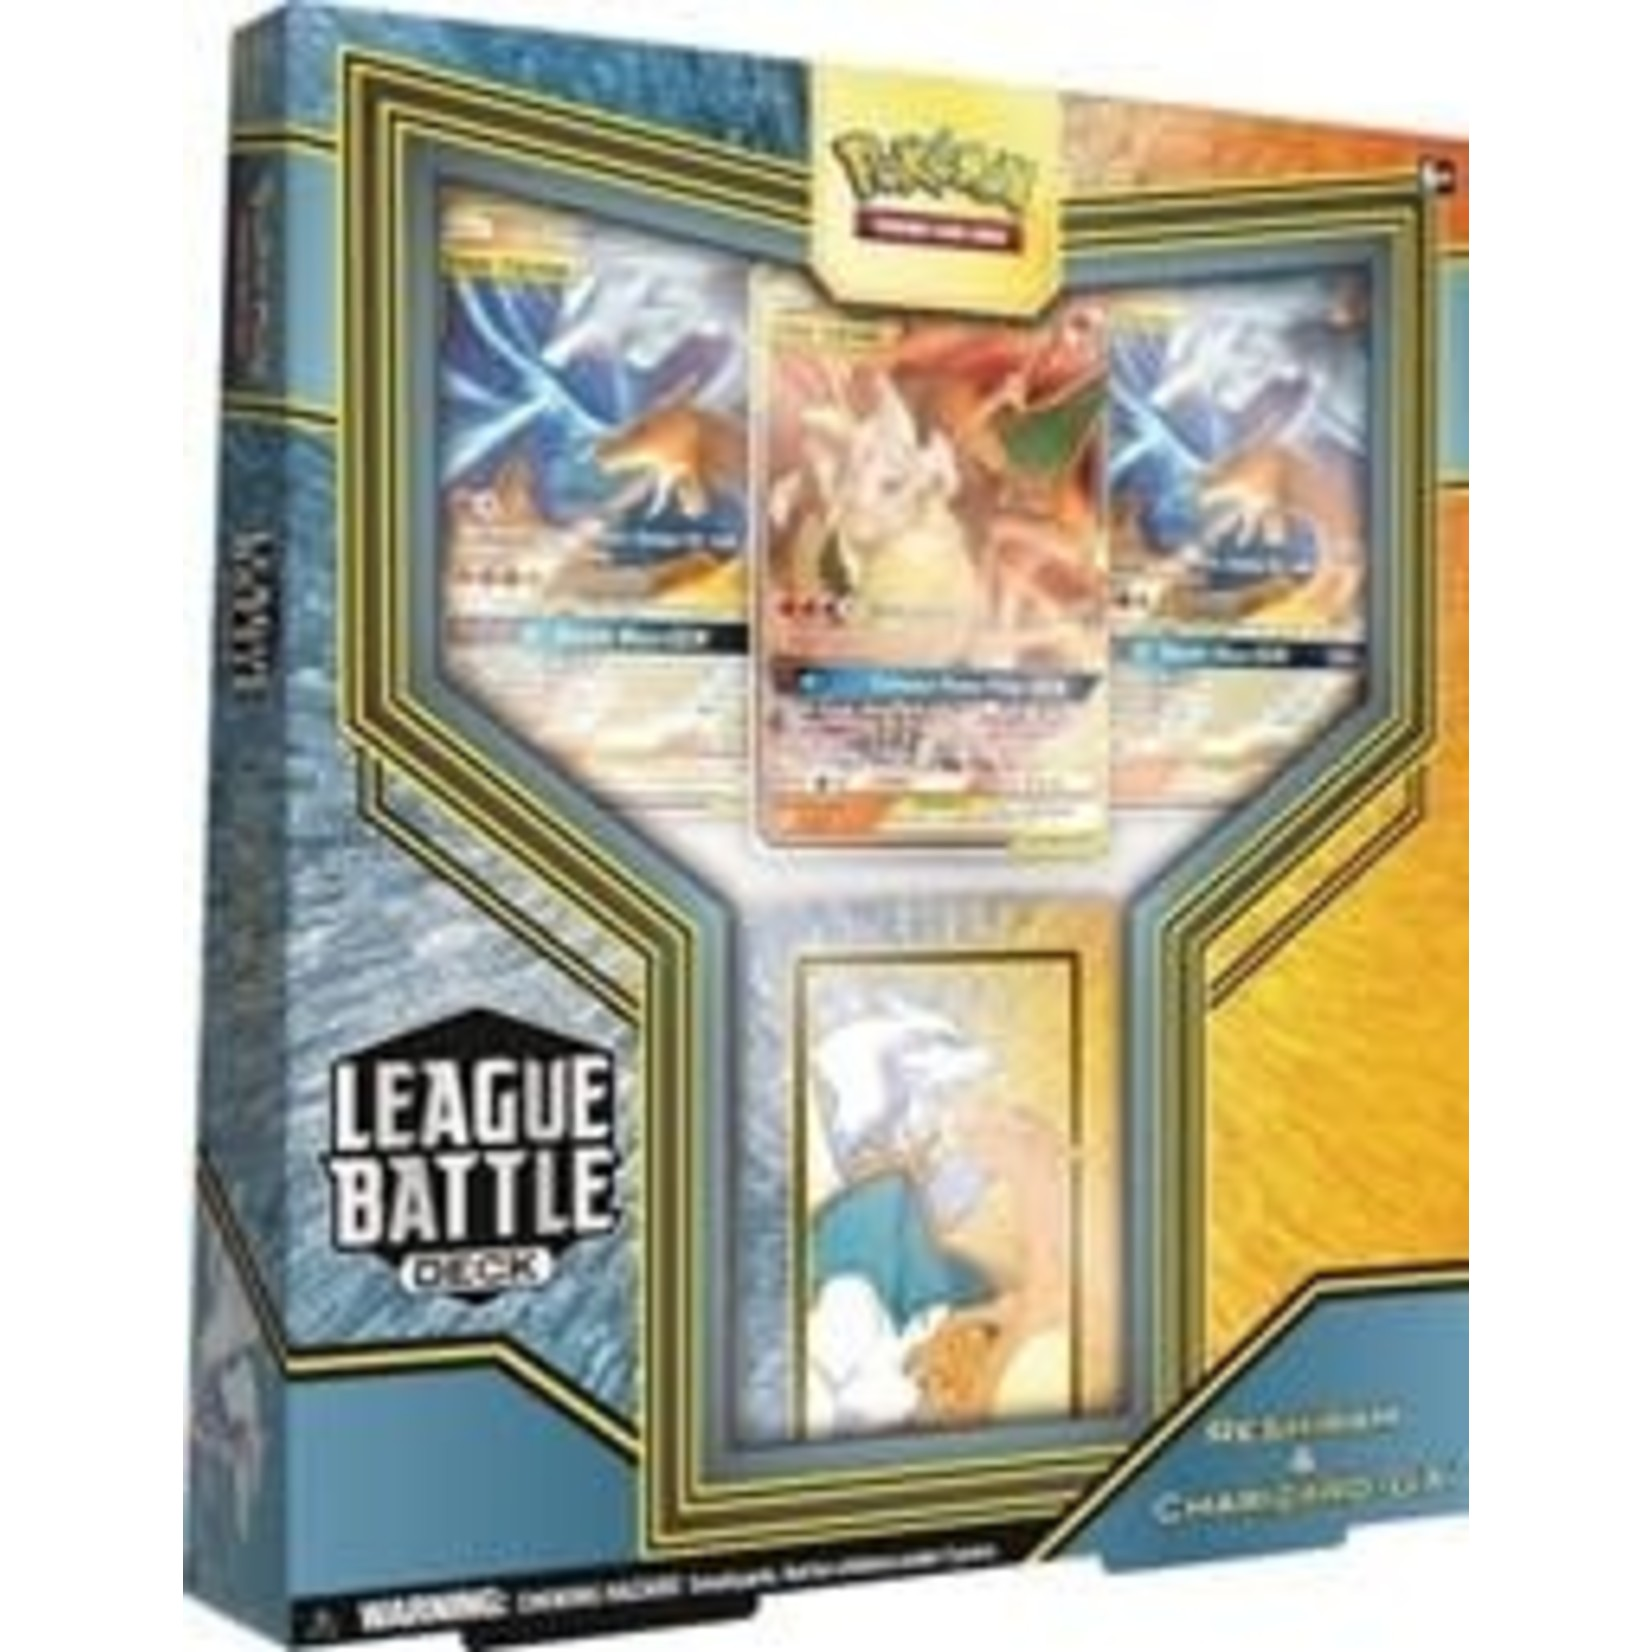 Pokemon International Pokemon League Battle Deck : Reshiram & Charizard GX